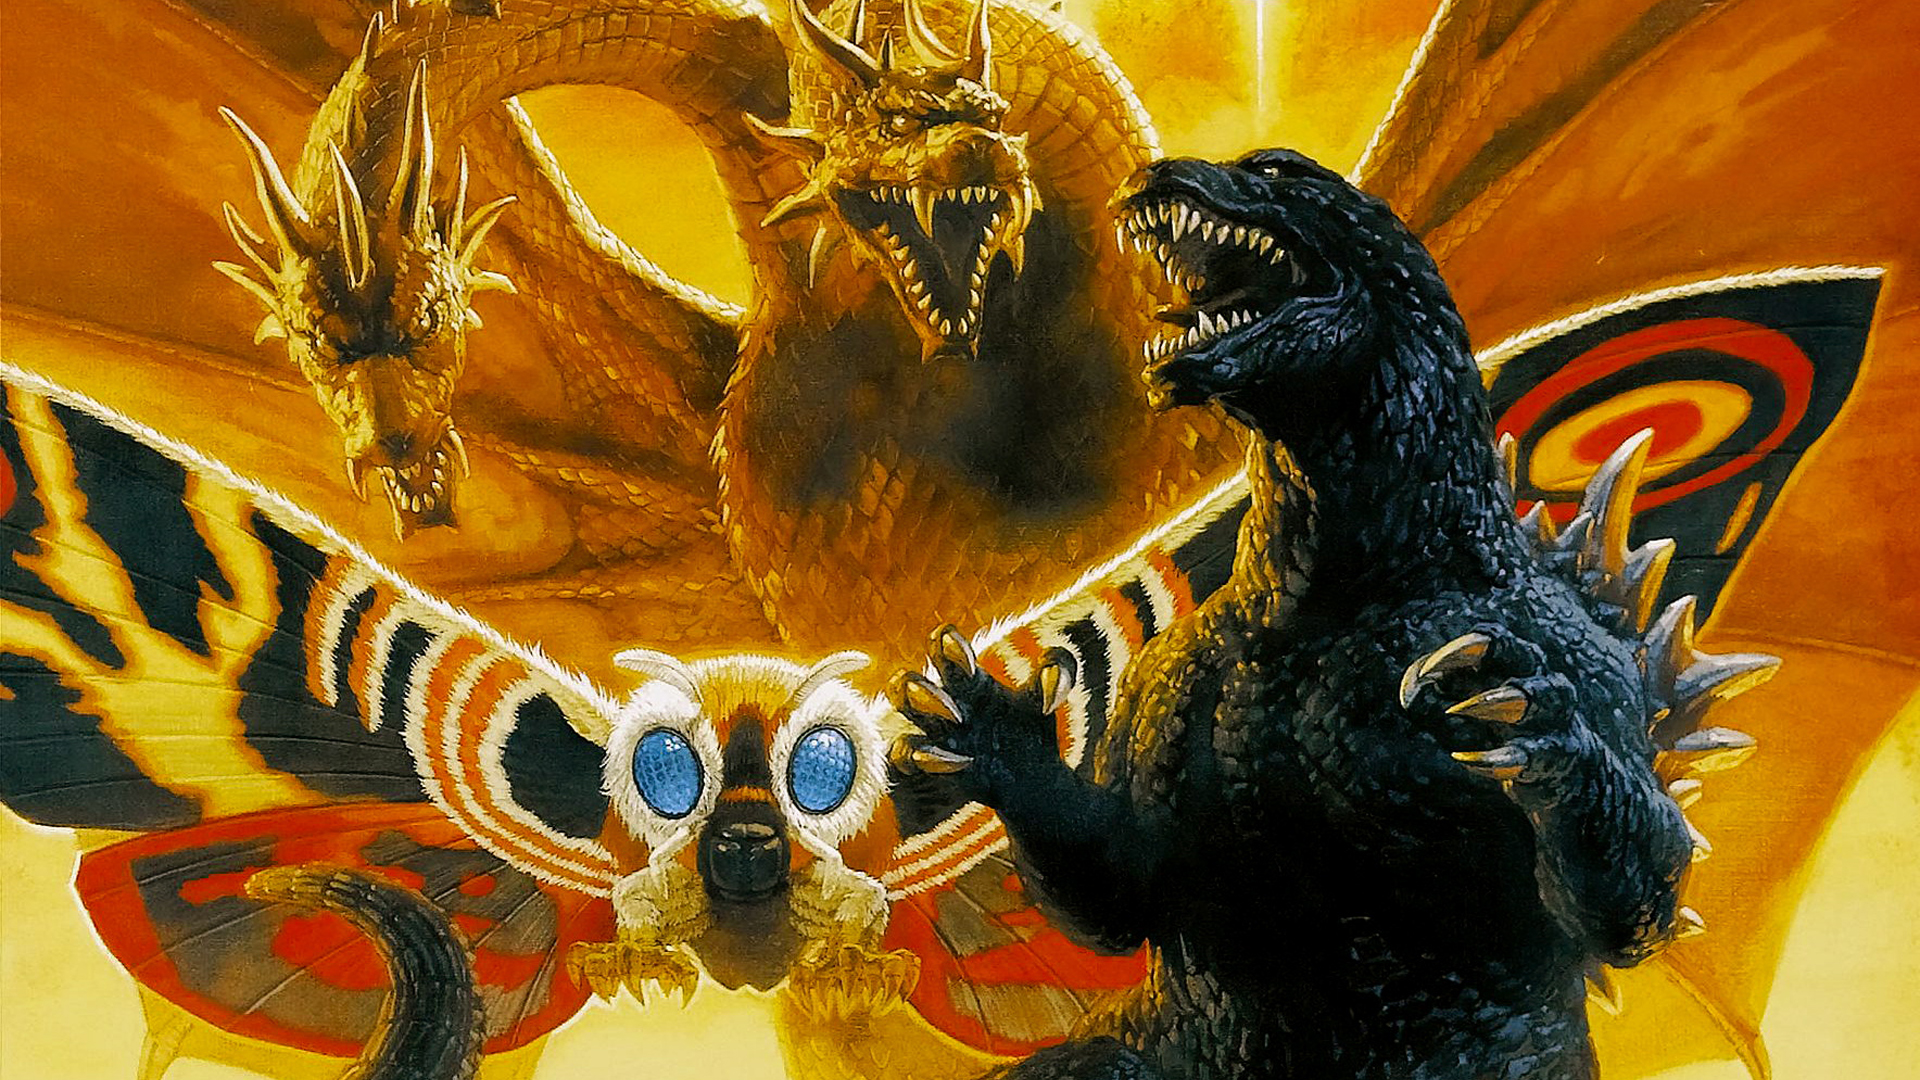 Godzilla, Mothra and King Ghidorah hình nền